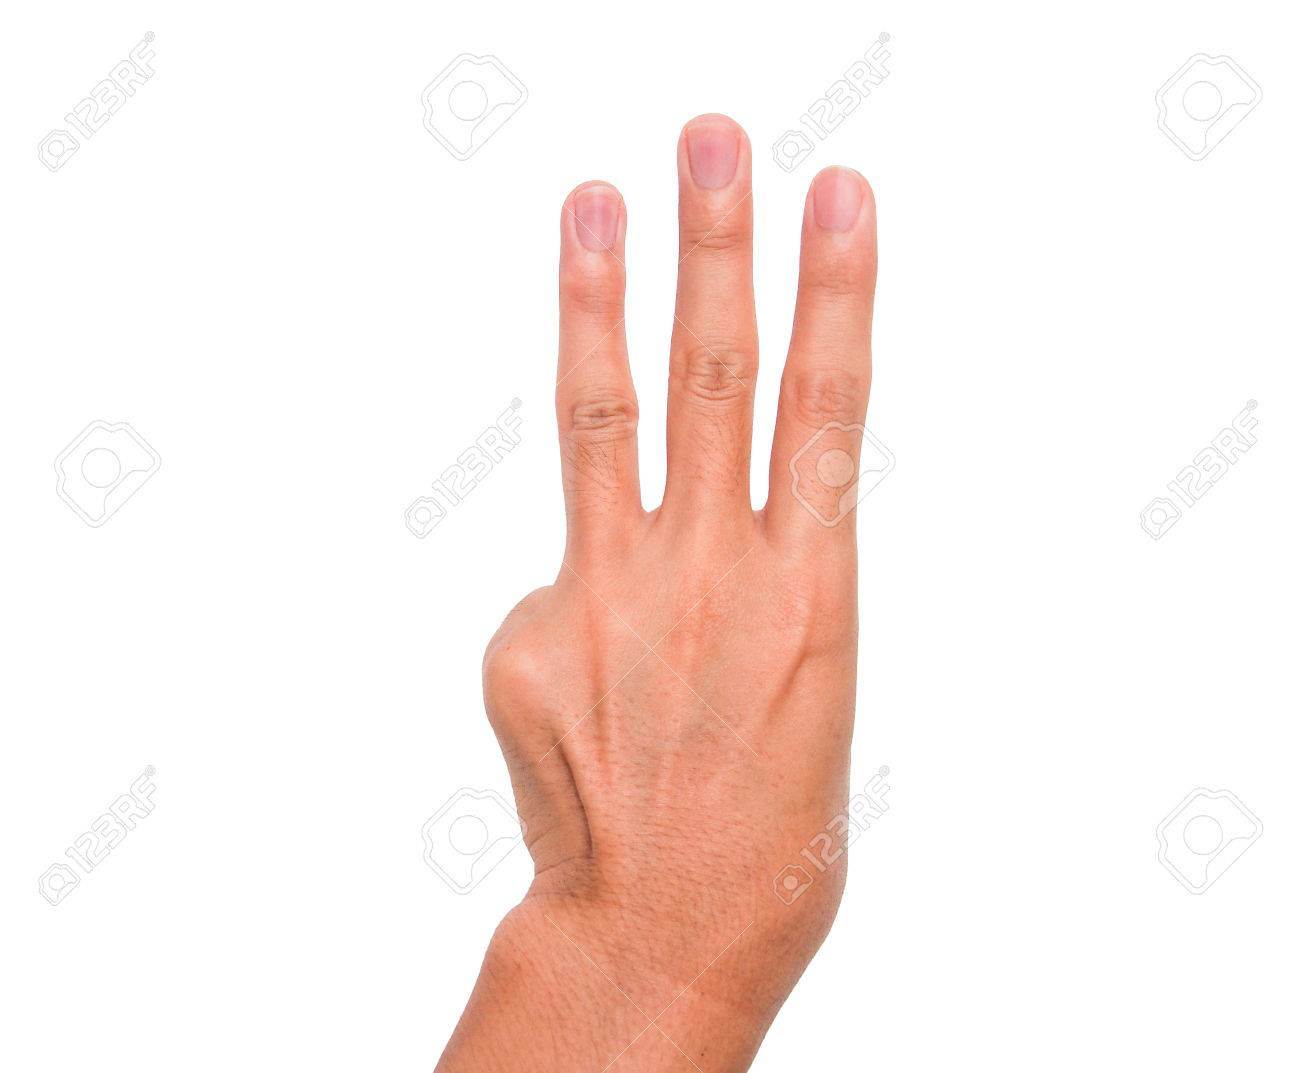 A Hand Sign Of 3 Fingers Point Upward Meaning Three Third Etc